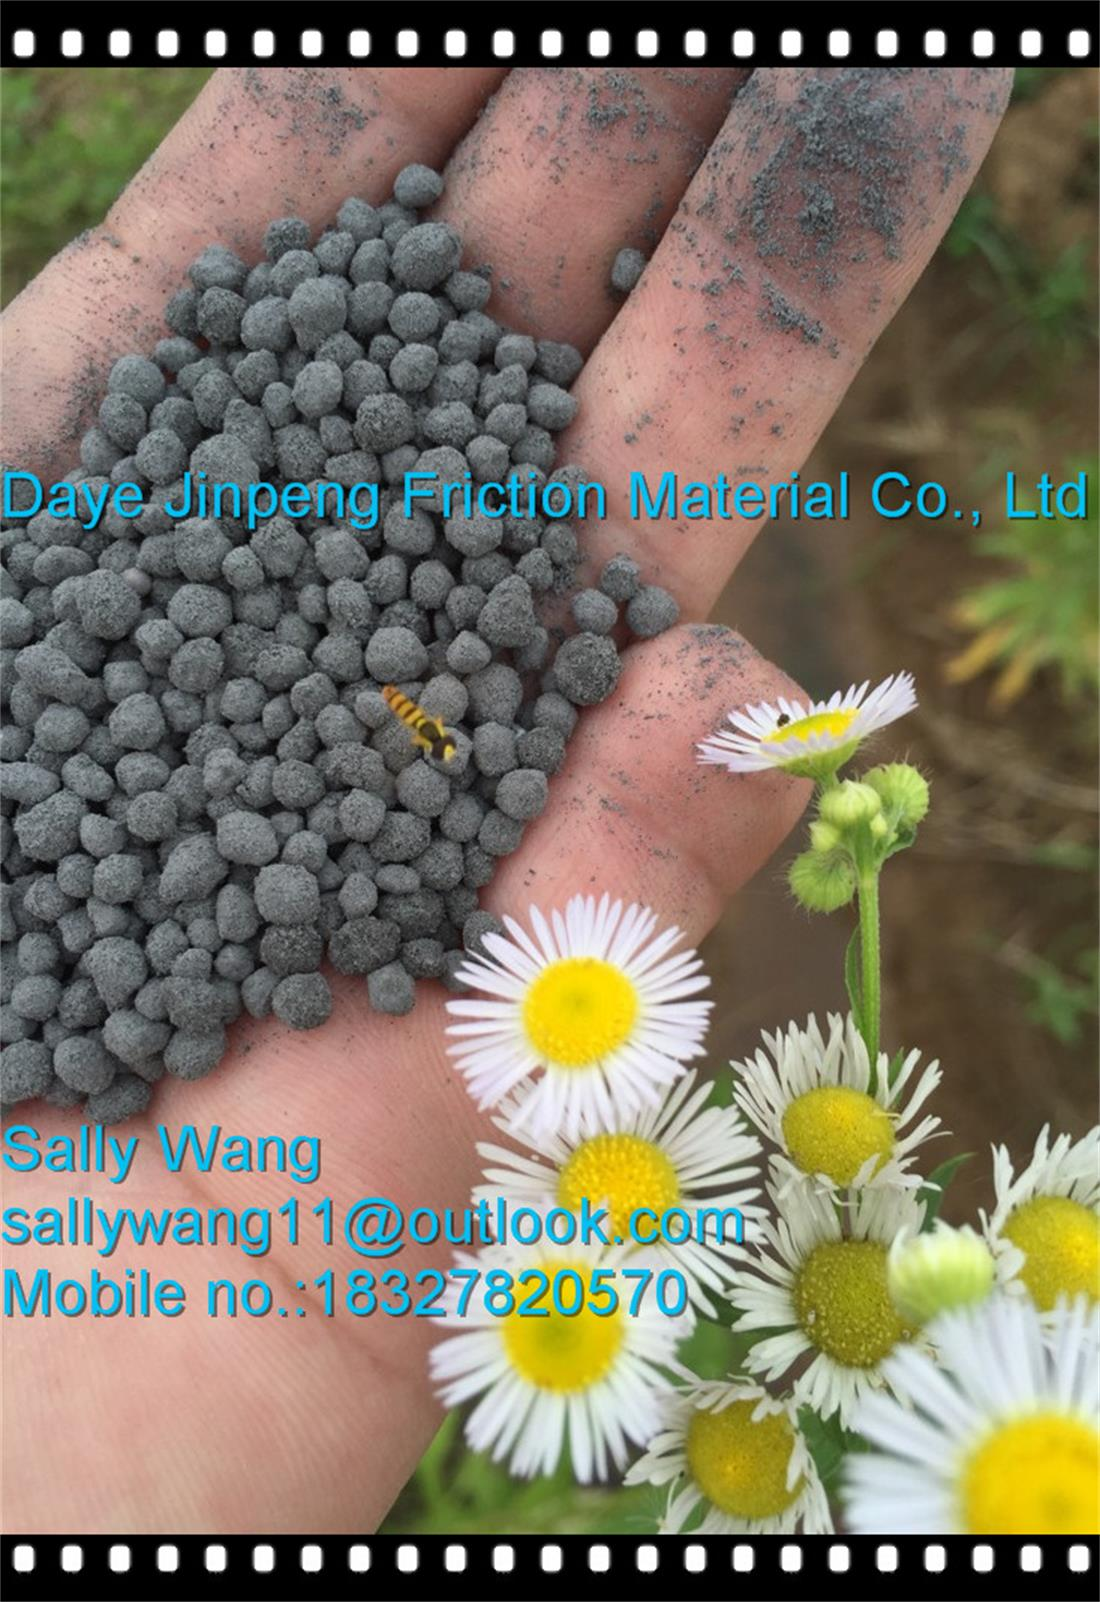 selenium-rich and strontium-rich particles for water purification